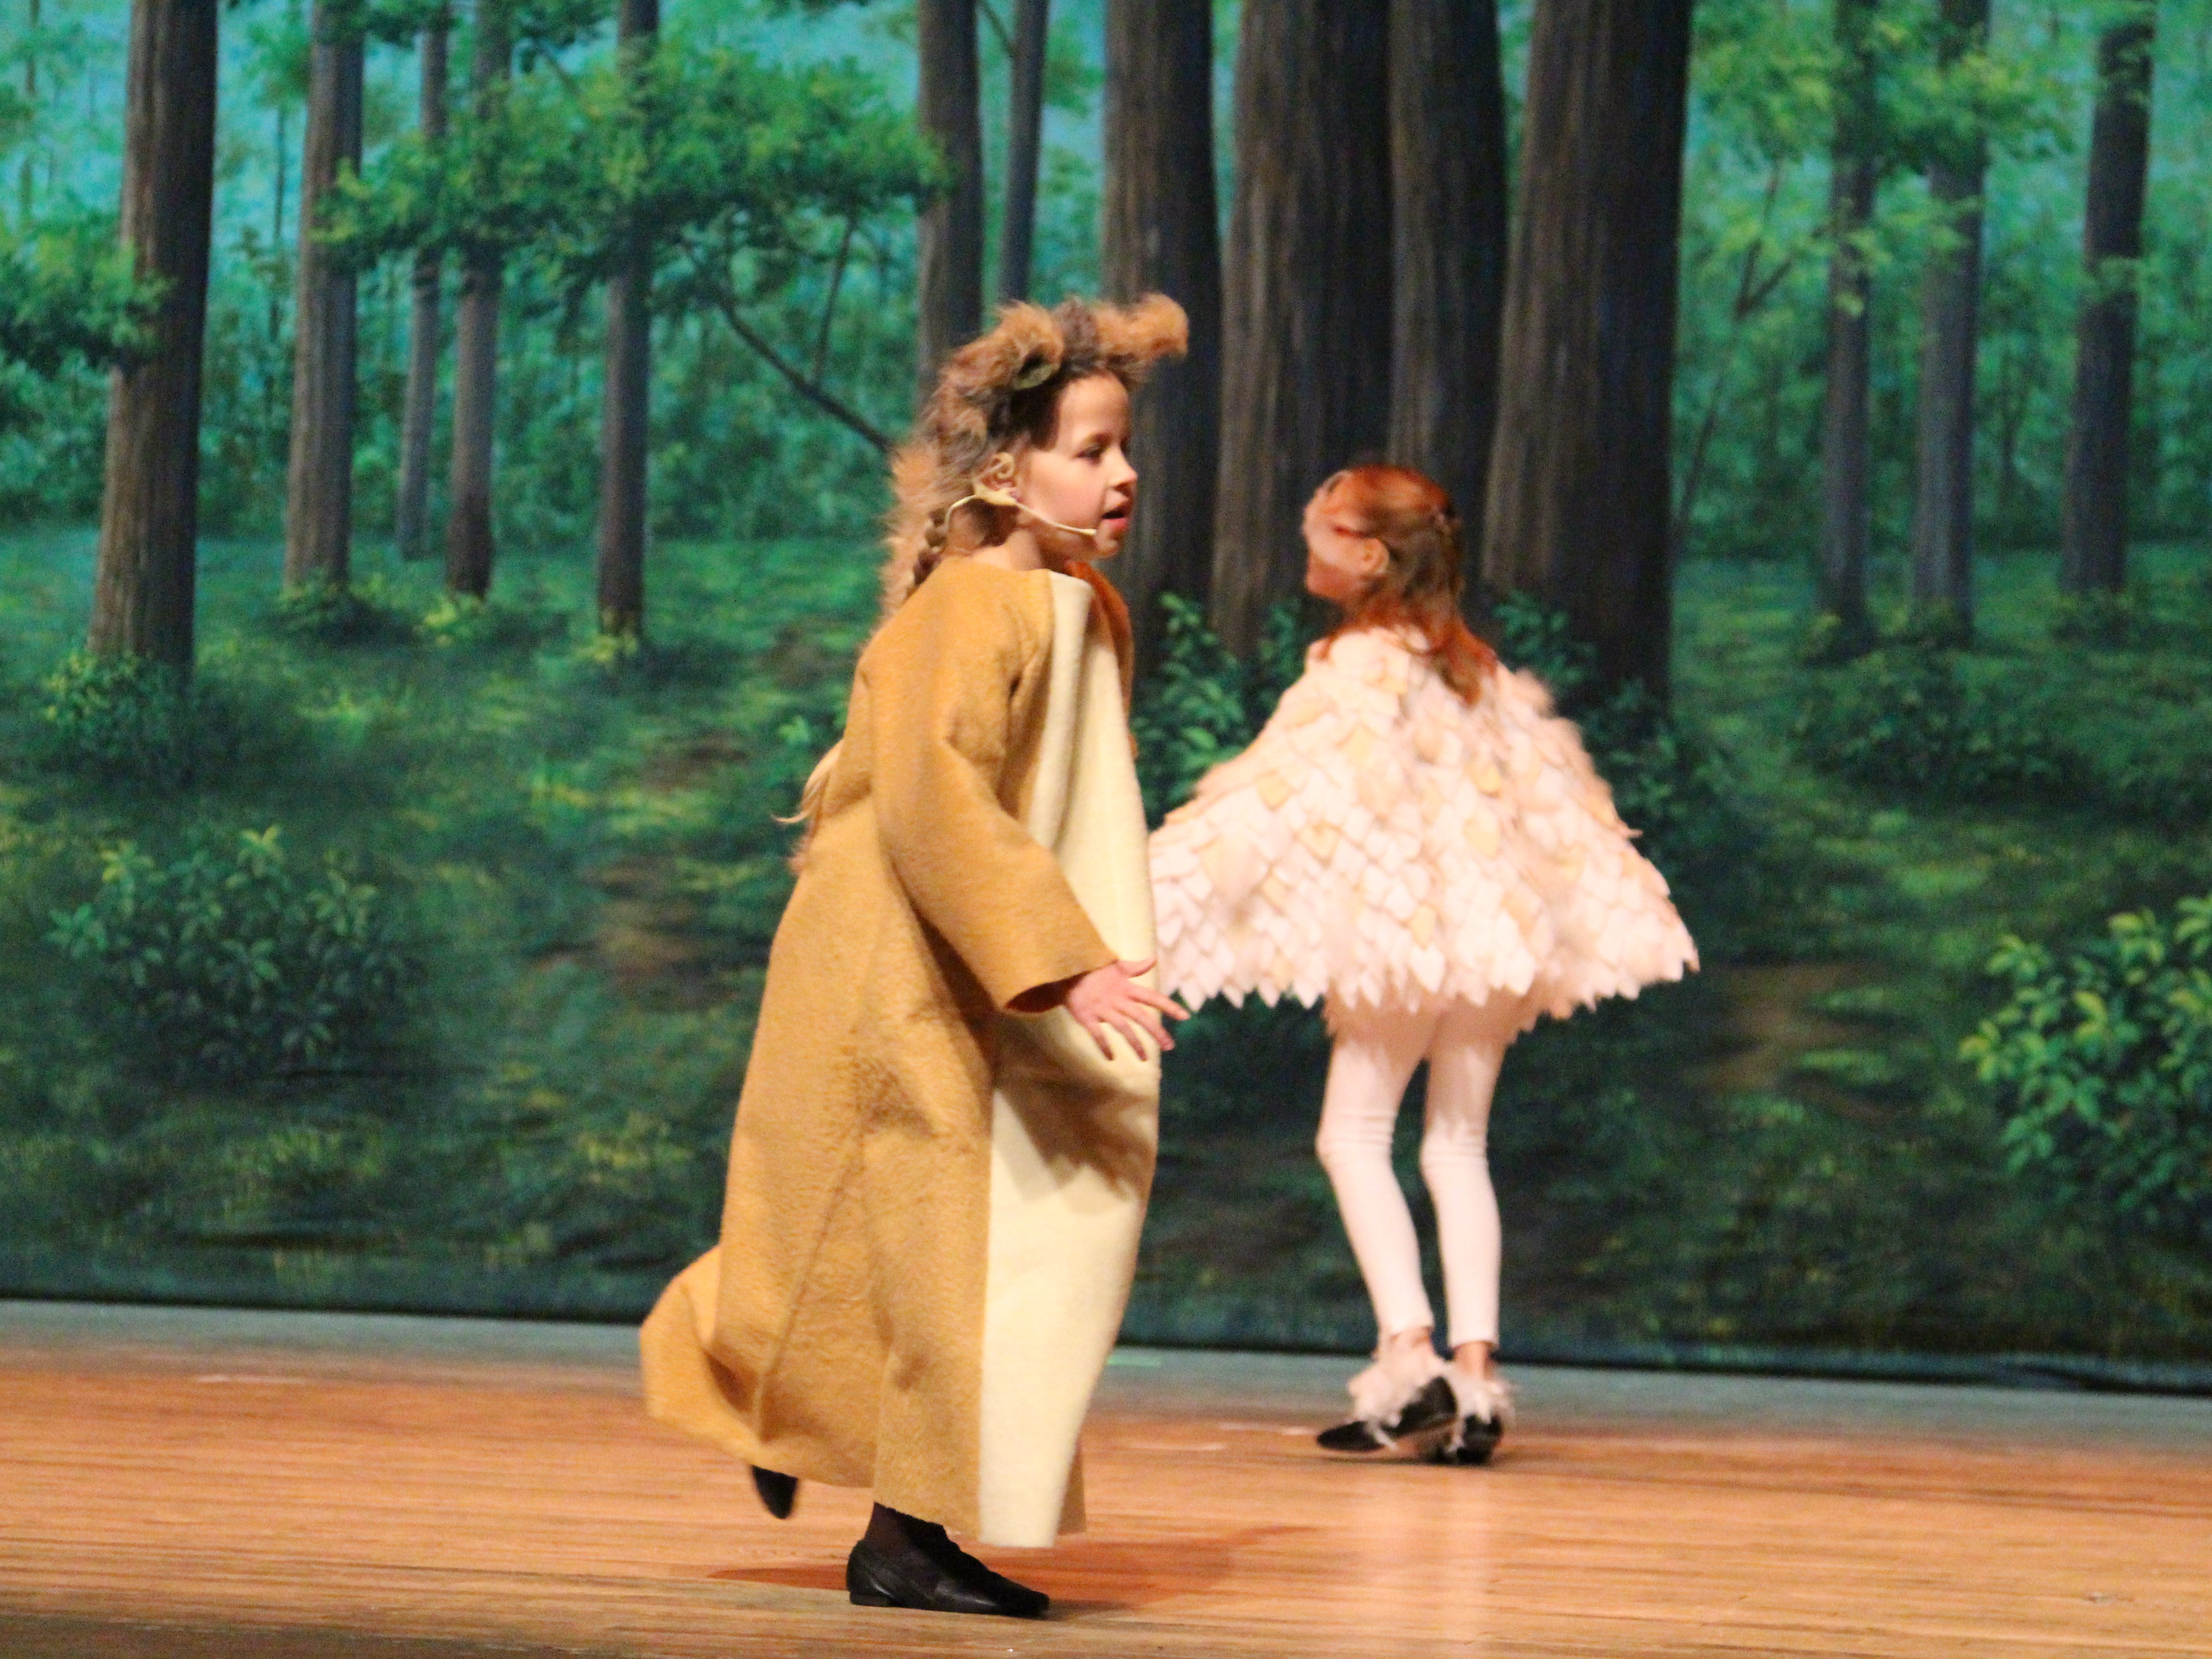 """Wild animals frolic through the forest in the Marion Palace Theatre's production of """"The Tale of Snow White,"""" an adaptation of the classic fairy tale. The production starts at 7:30 p.m. Friday and Saturday, Feb. 8 and 9 and at  2 p.m. Sunday, Feb. 10."""